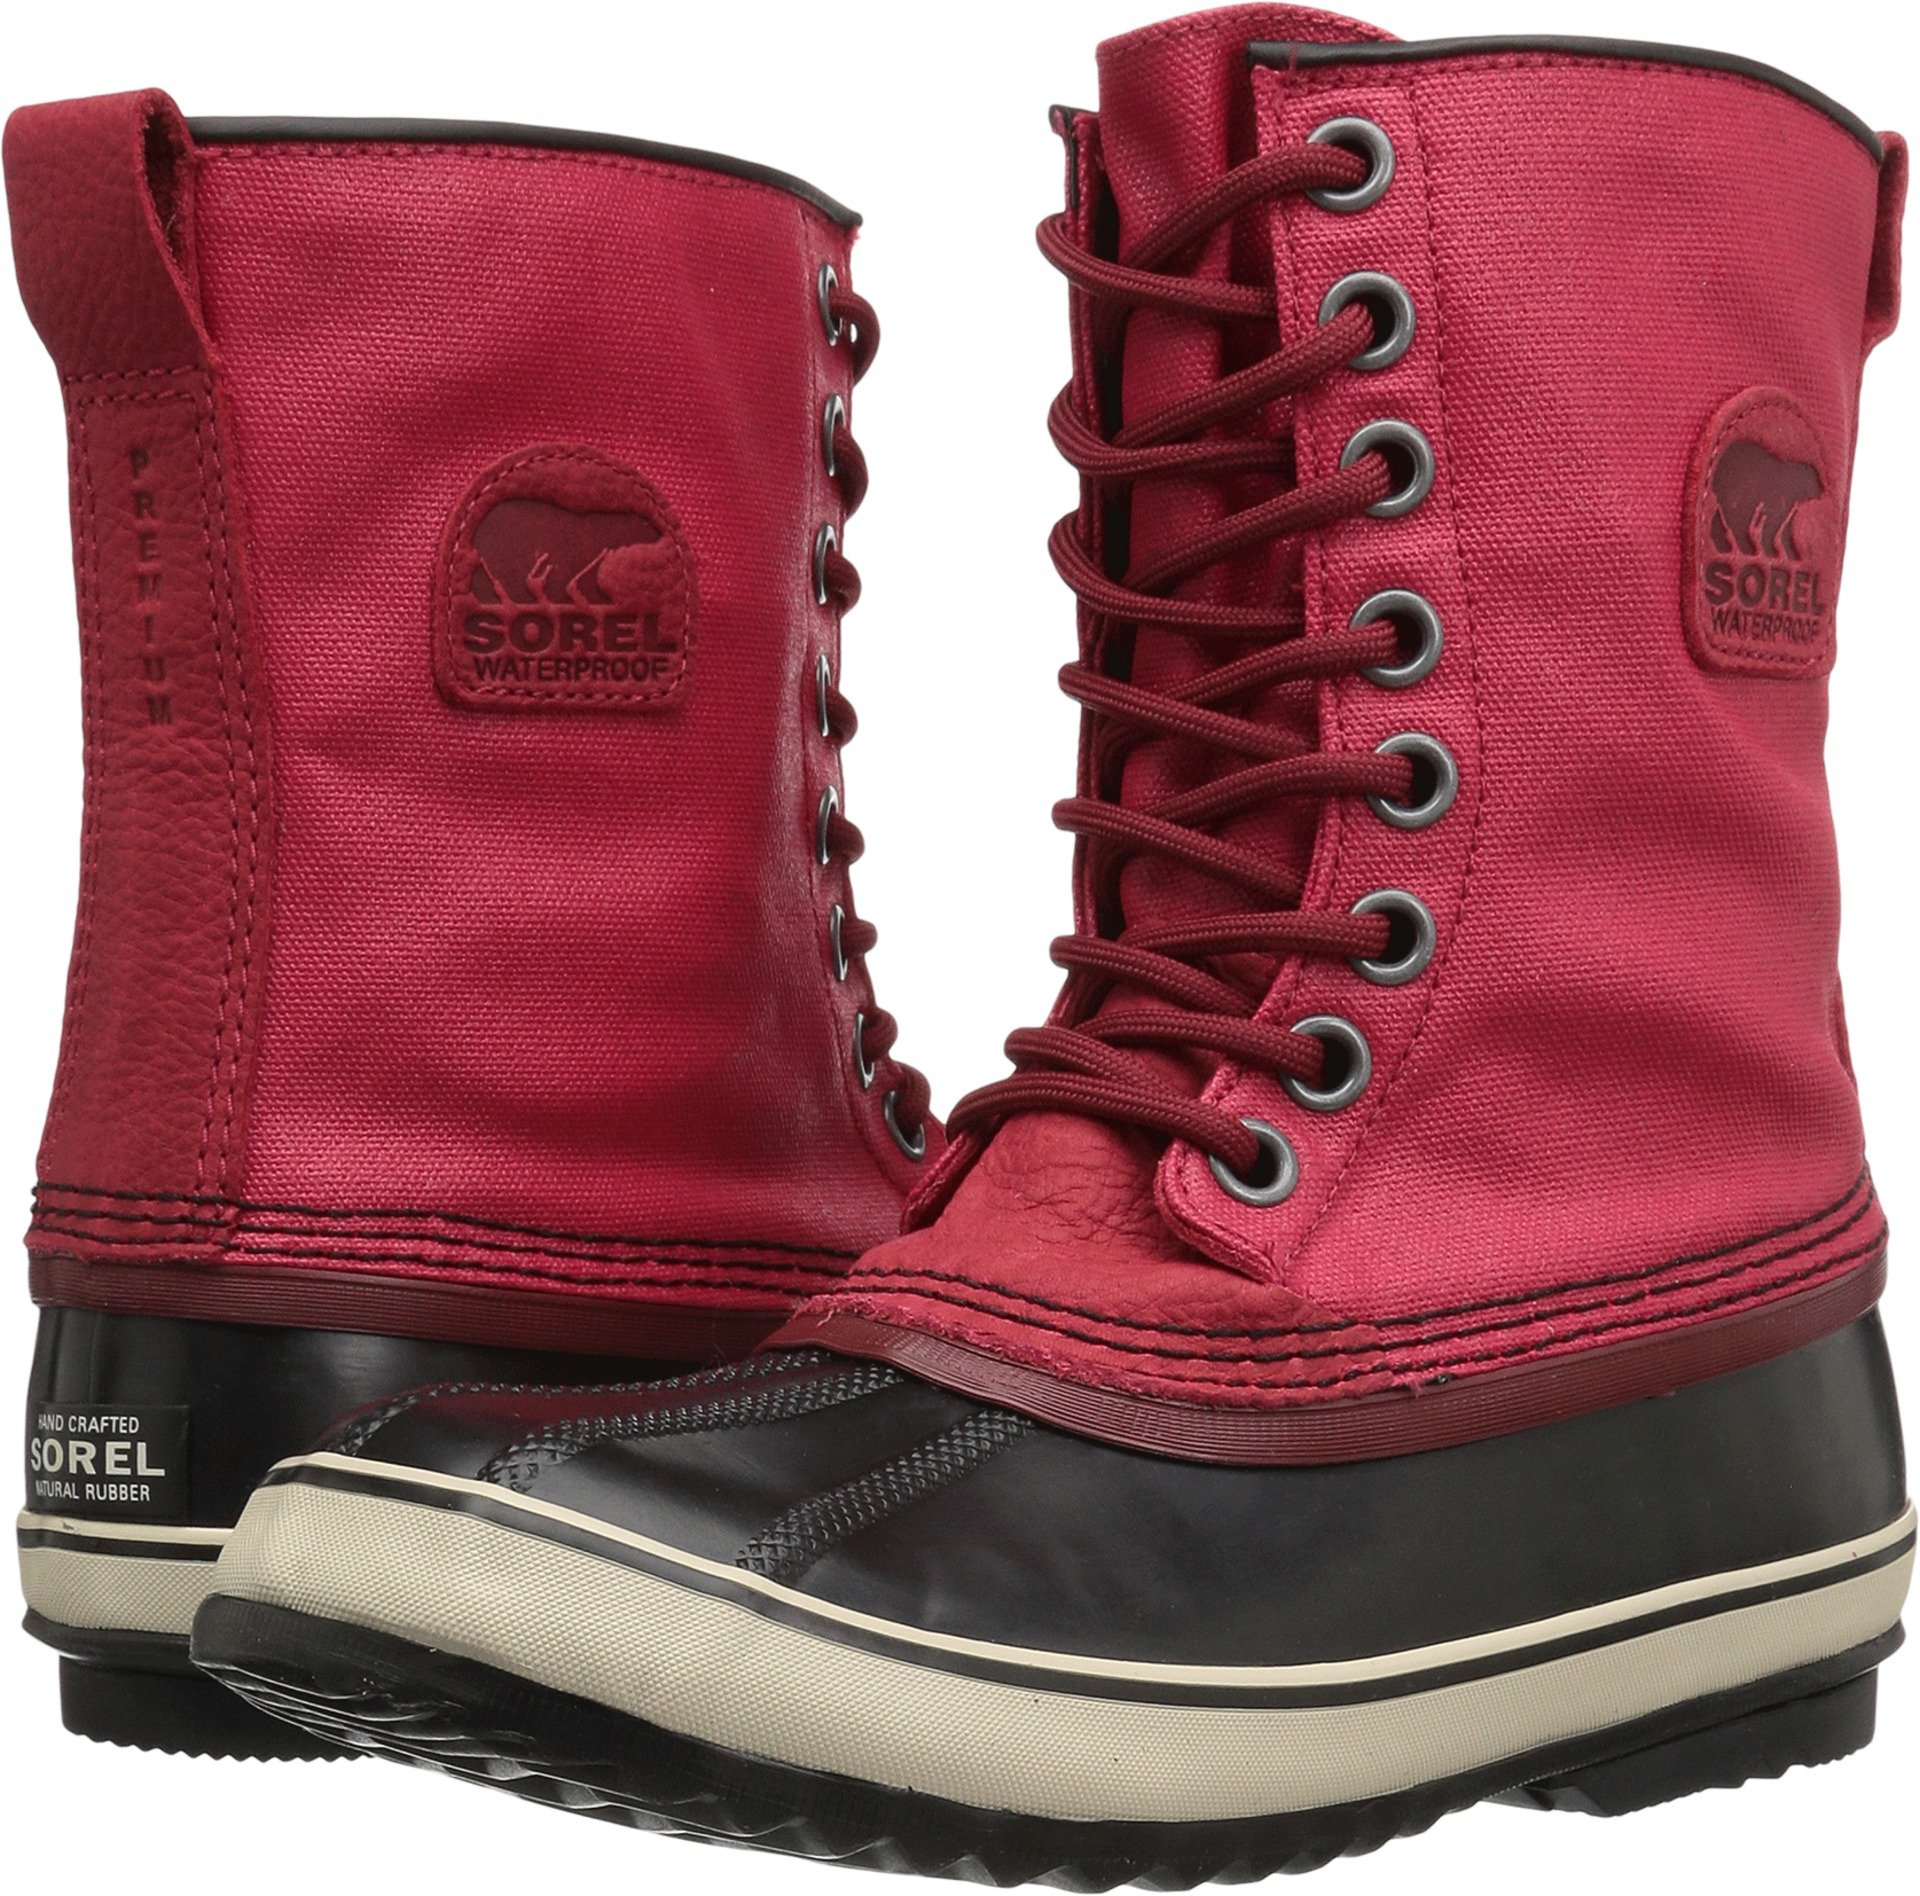 SOREL Women's 1964 Premium CVS Mid Calf Boot, Candy Apple, Red Element, 9 B US